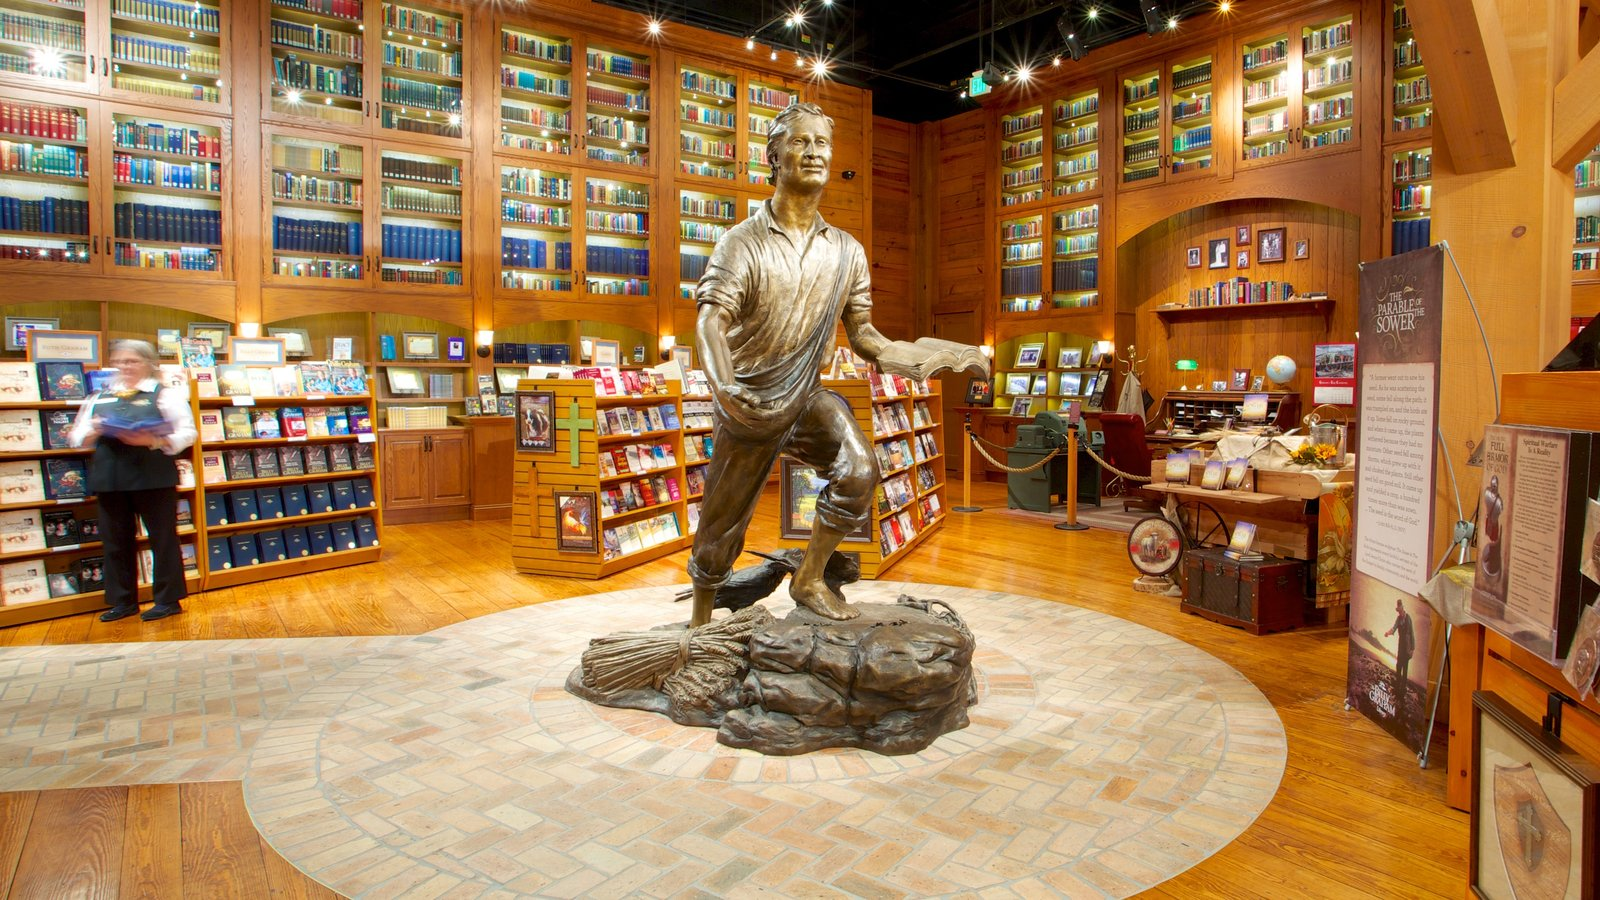 Billy Graham Library featuring art and interior views